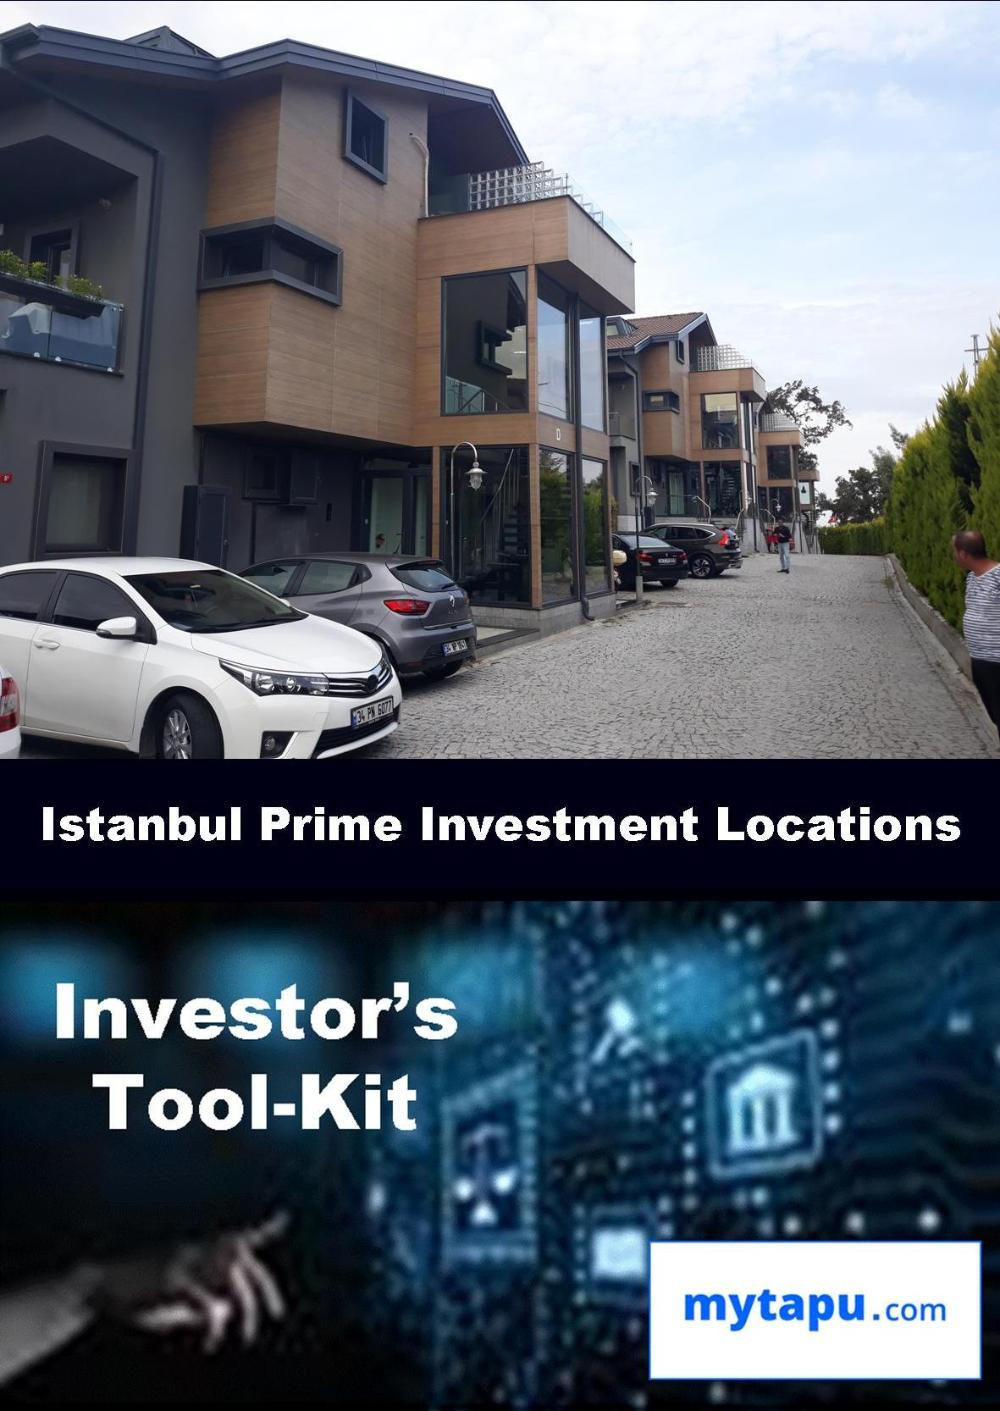 Exclusive Luxury Property for Investment in Prime istanbul Residential Locations